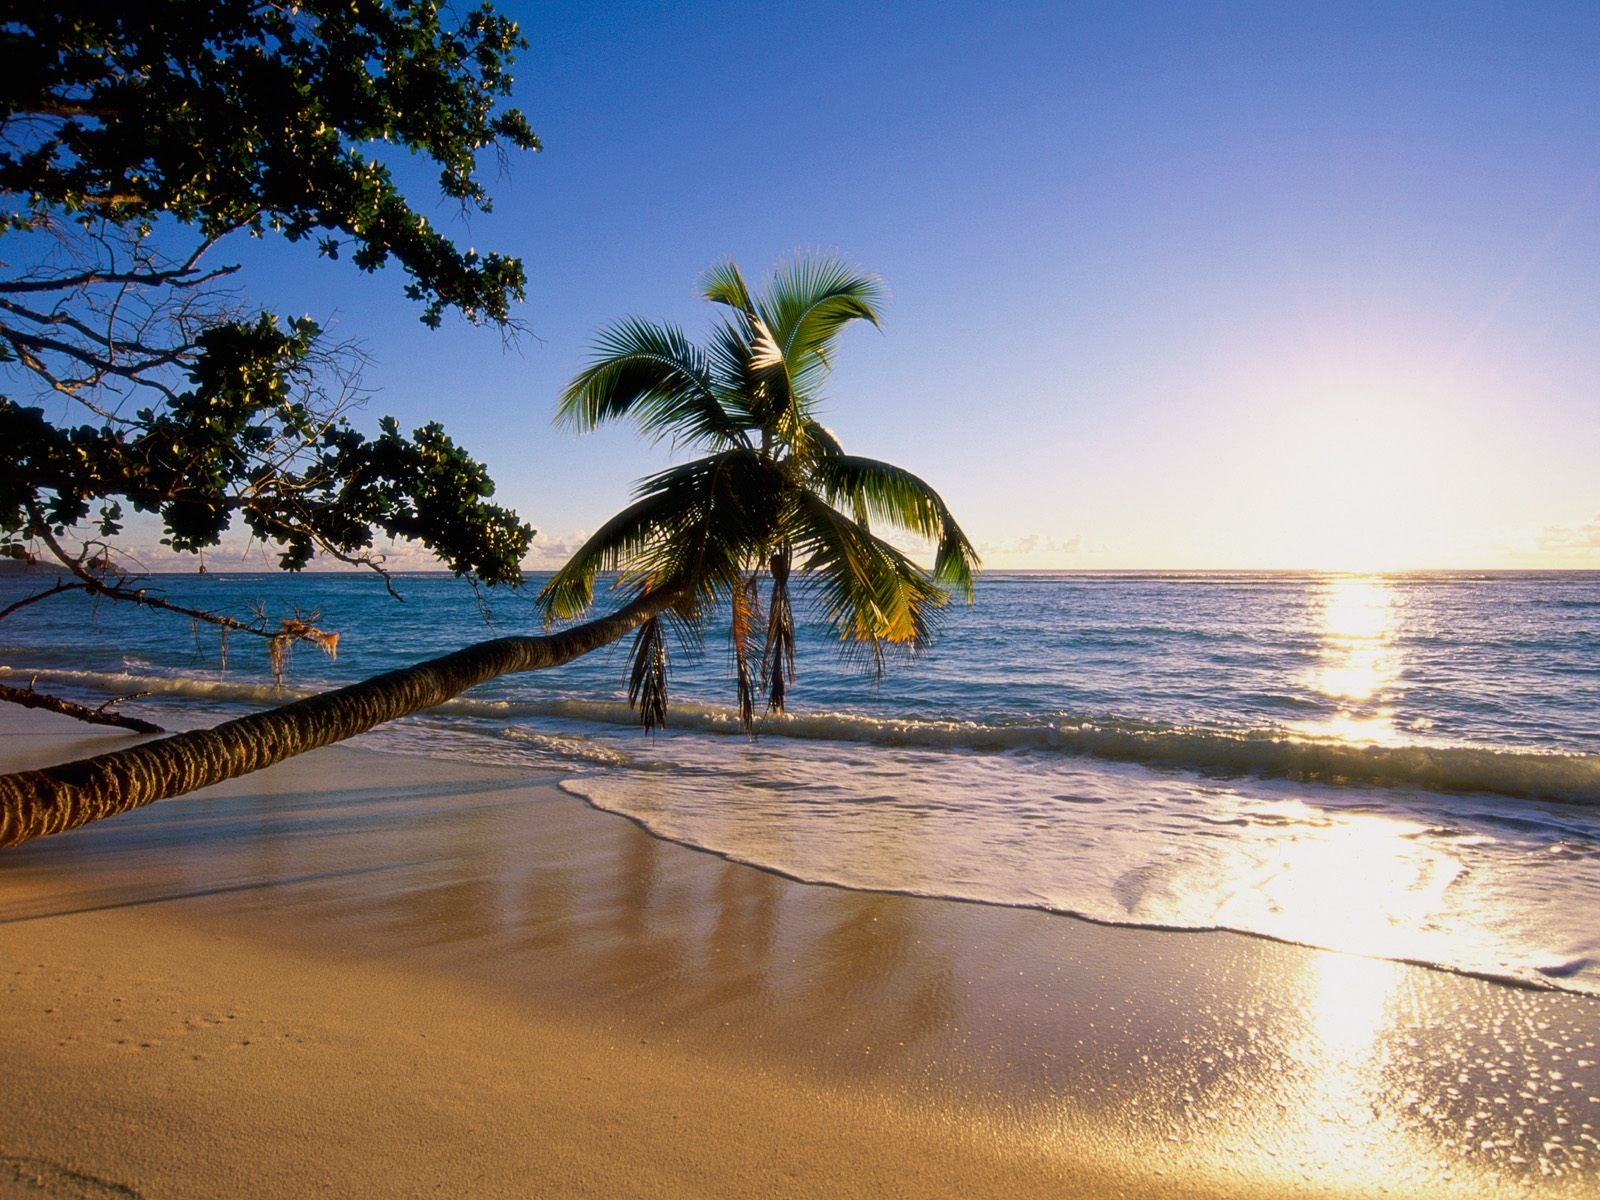 Fondos De Pantalla De Playas, Wallpapers Beach Gratis